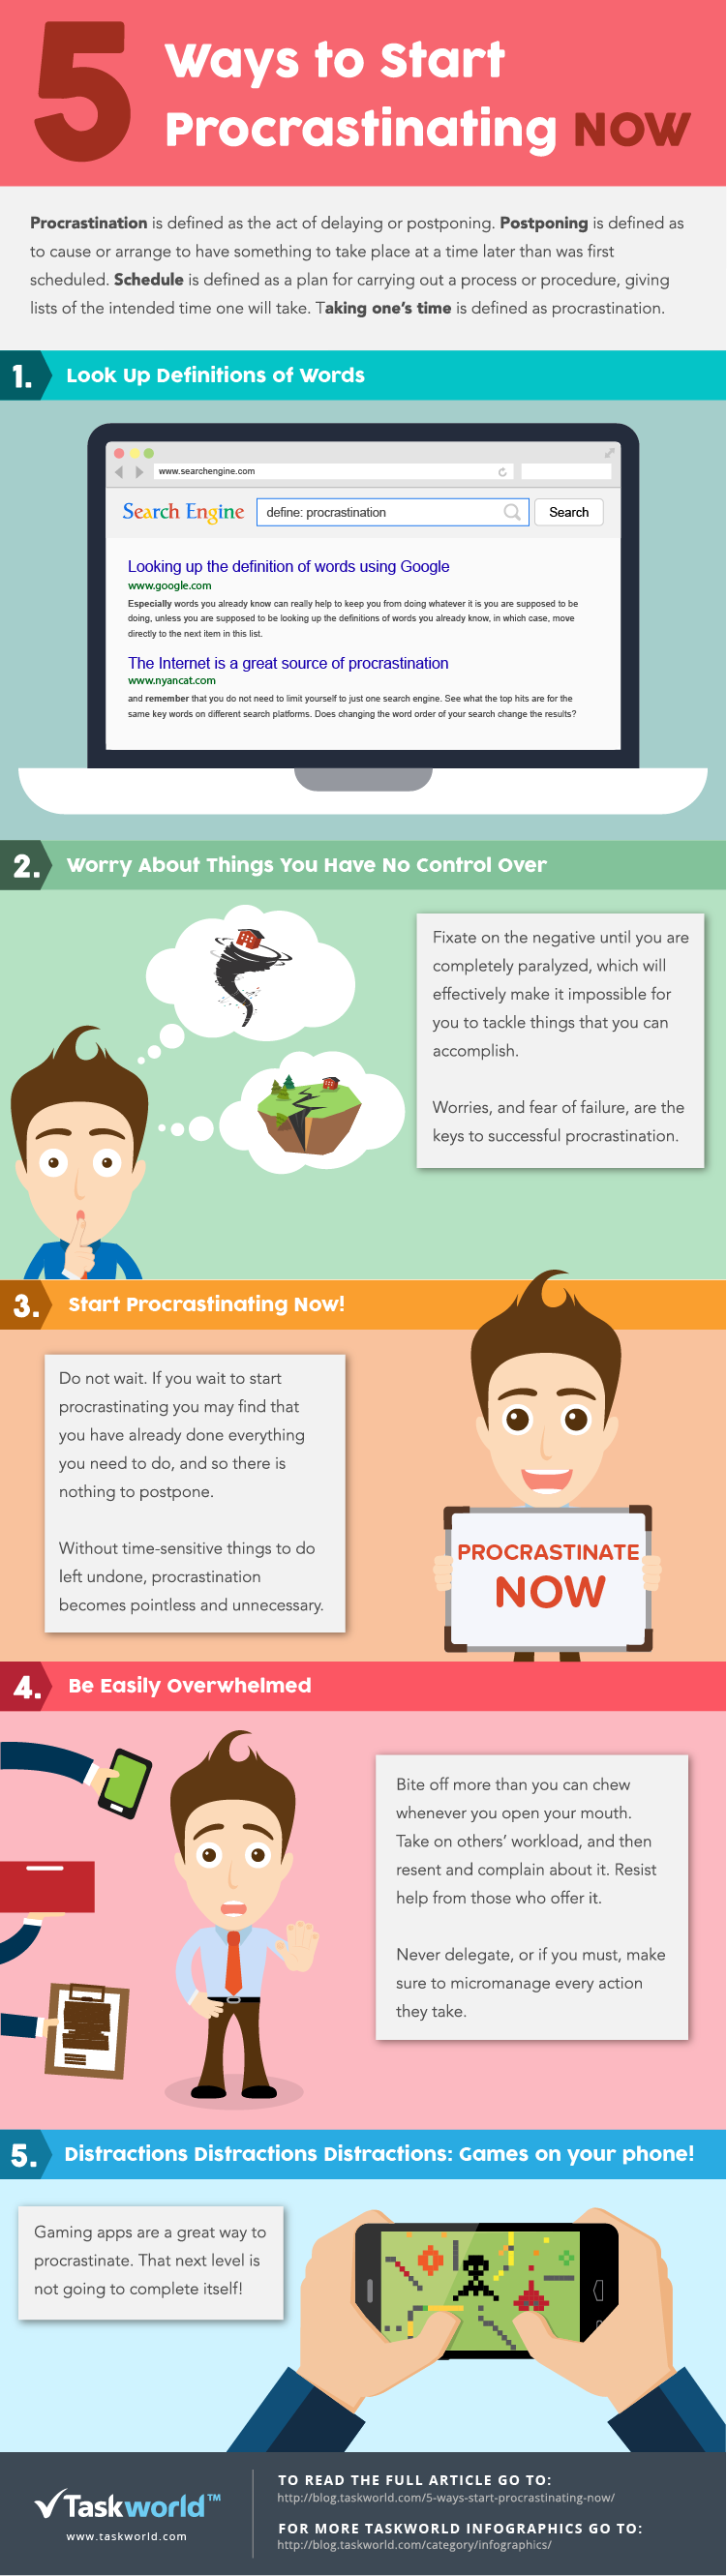 Infographic: 5 Ways To Procrastinating Now